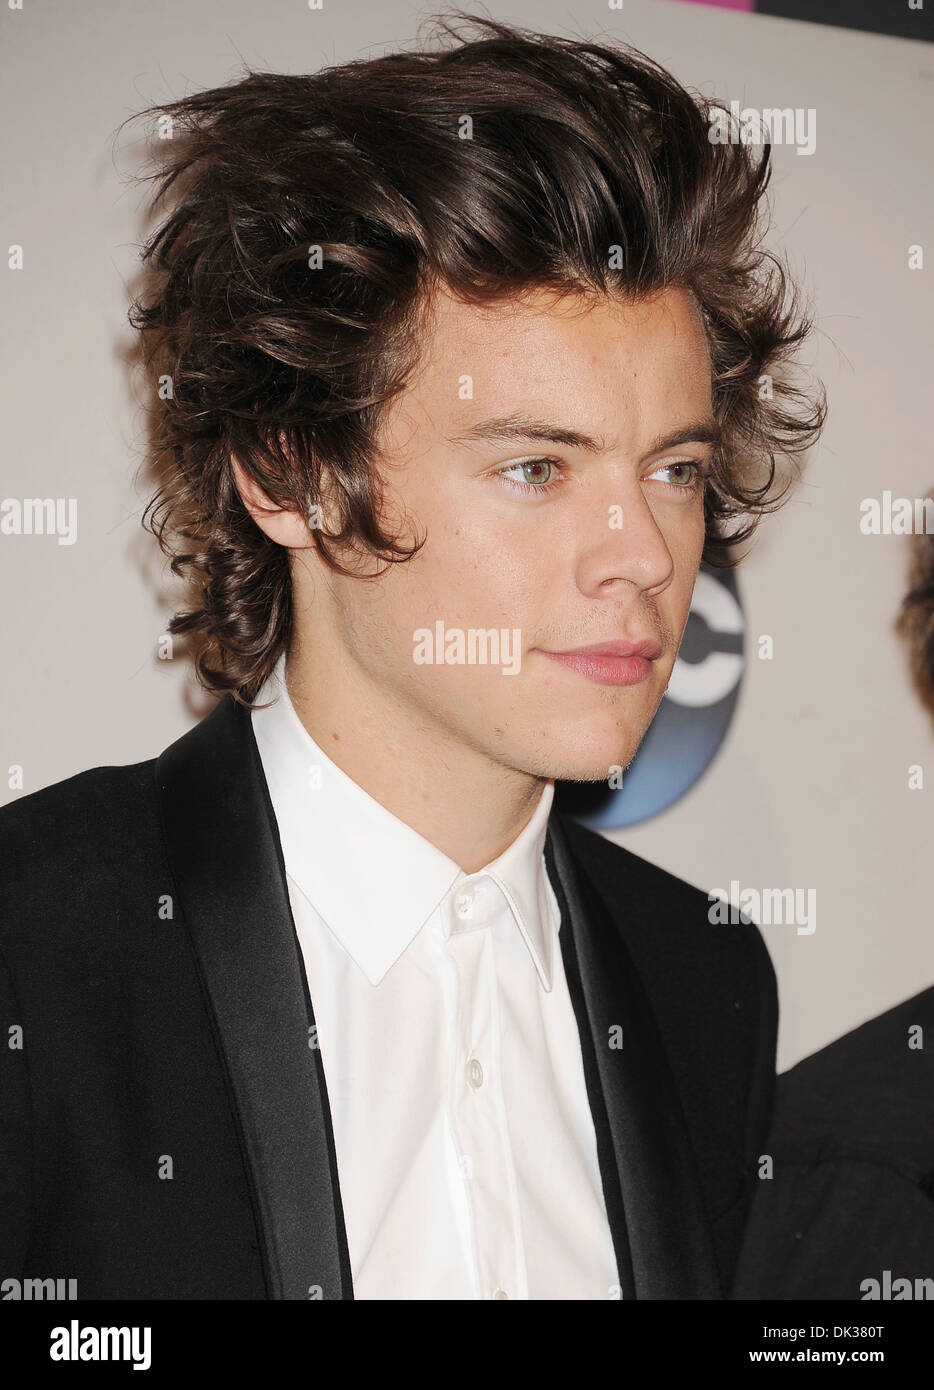 ONE DIRECTION singer Harry Styles in November 2013. Photo Jeffrey Mayer - Stock Image